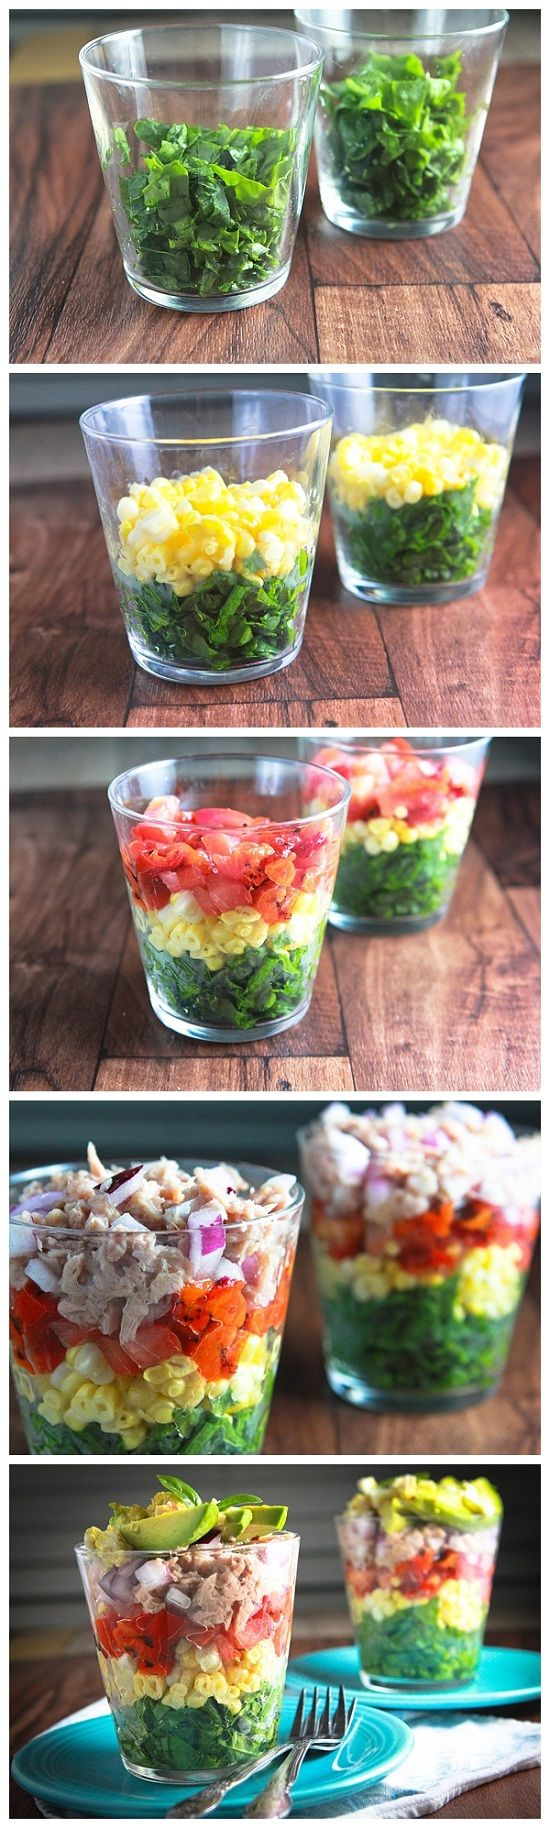 Rainbow Salad in a Glass - cute for a brunch!